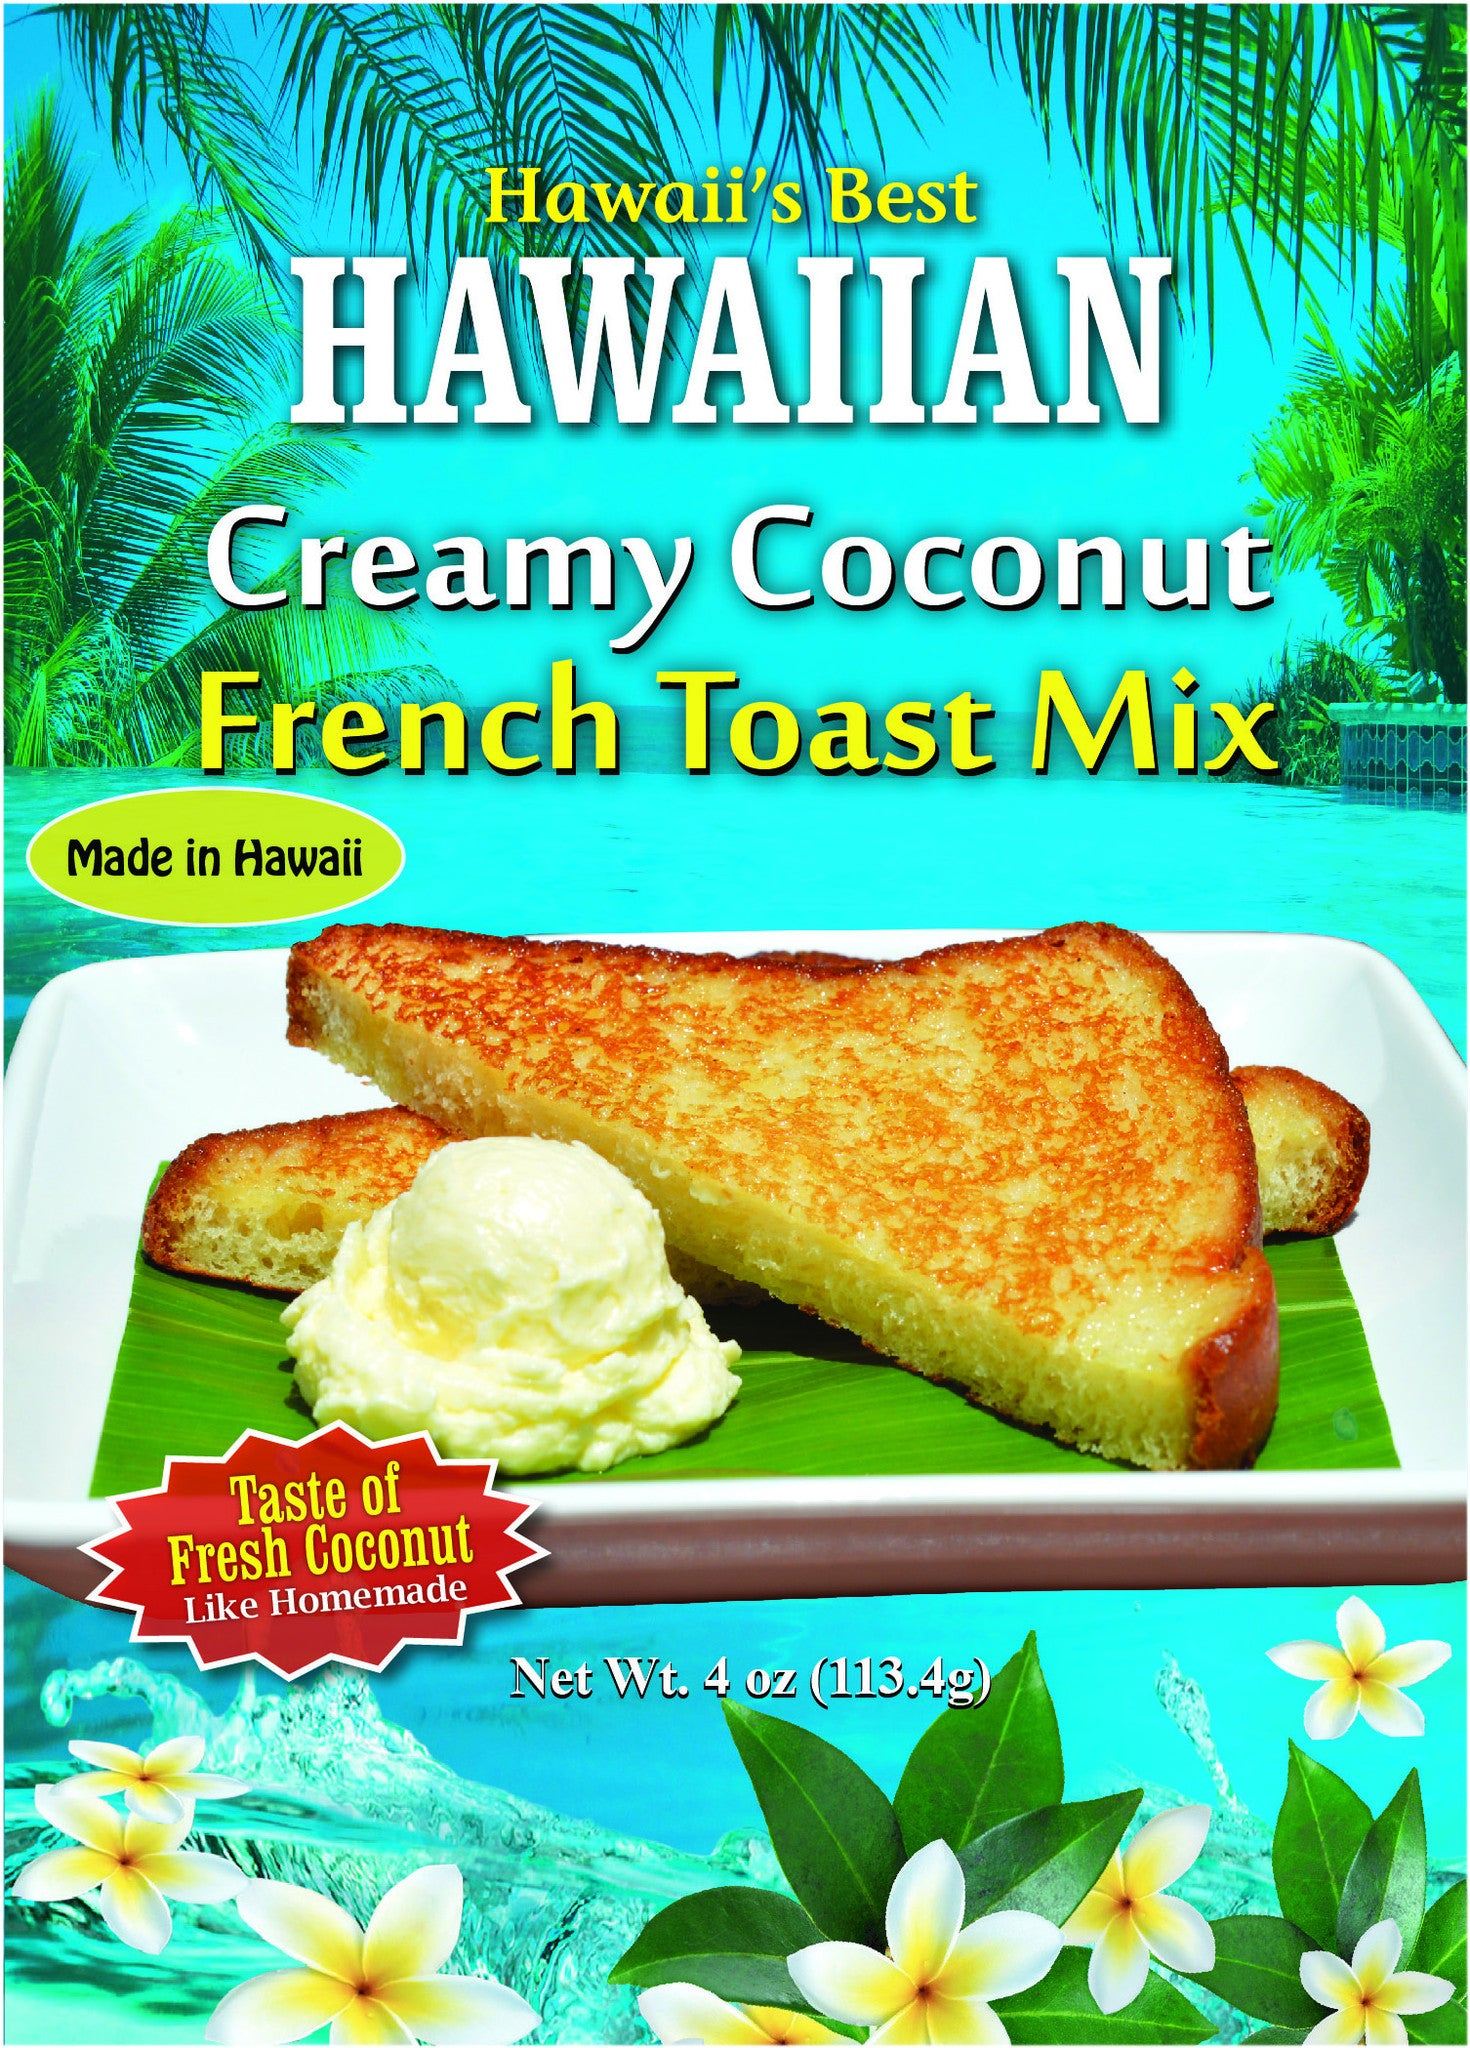 (3 BAGS - EXTRA VALUE PACK, $3.99 EACH) CREAMY COCONUT COCONUT FRENCH TOAST MIX (4 oz package).  Makes approx 12 slices of French Toast